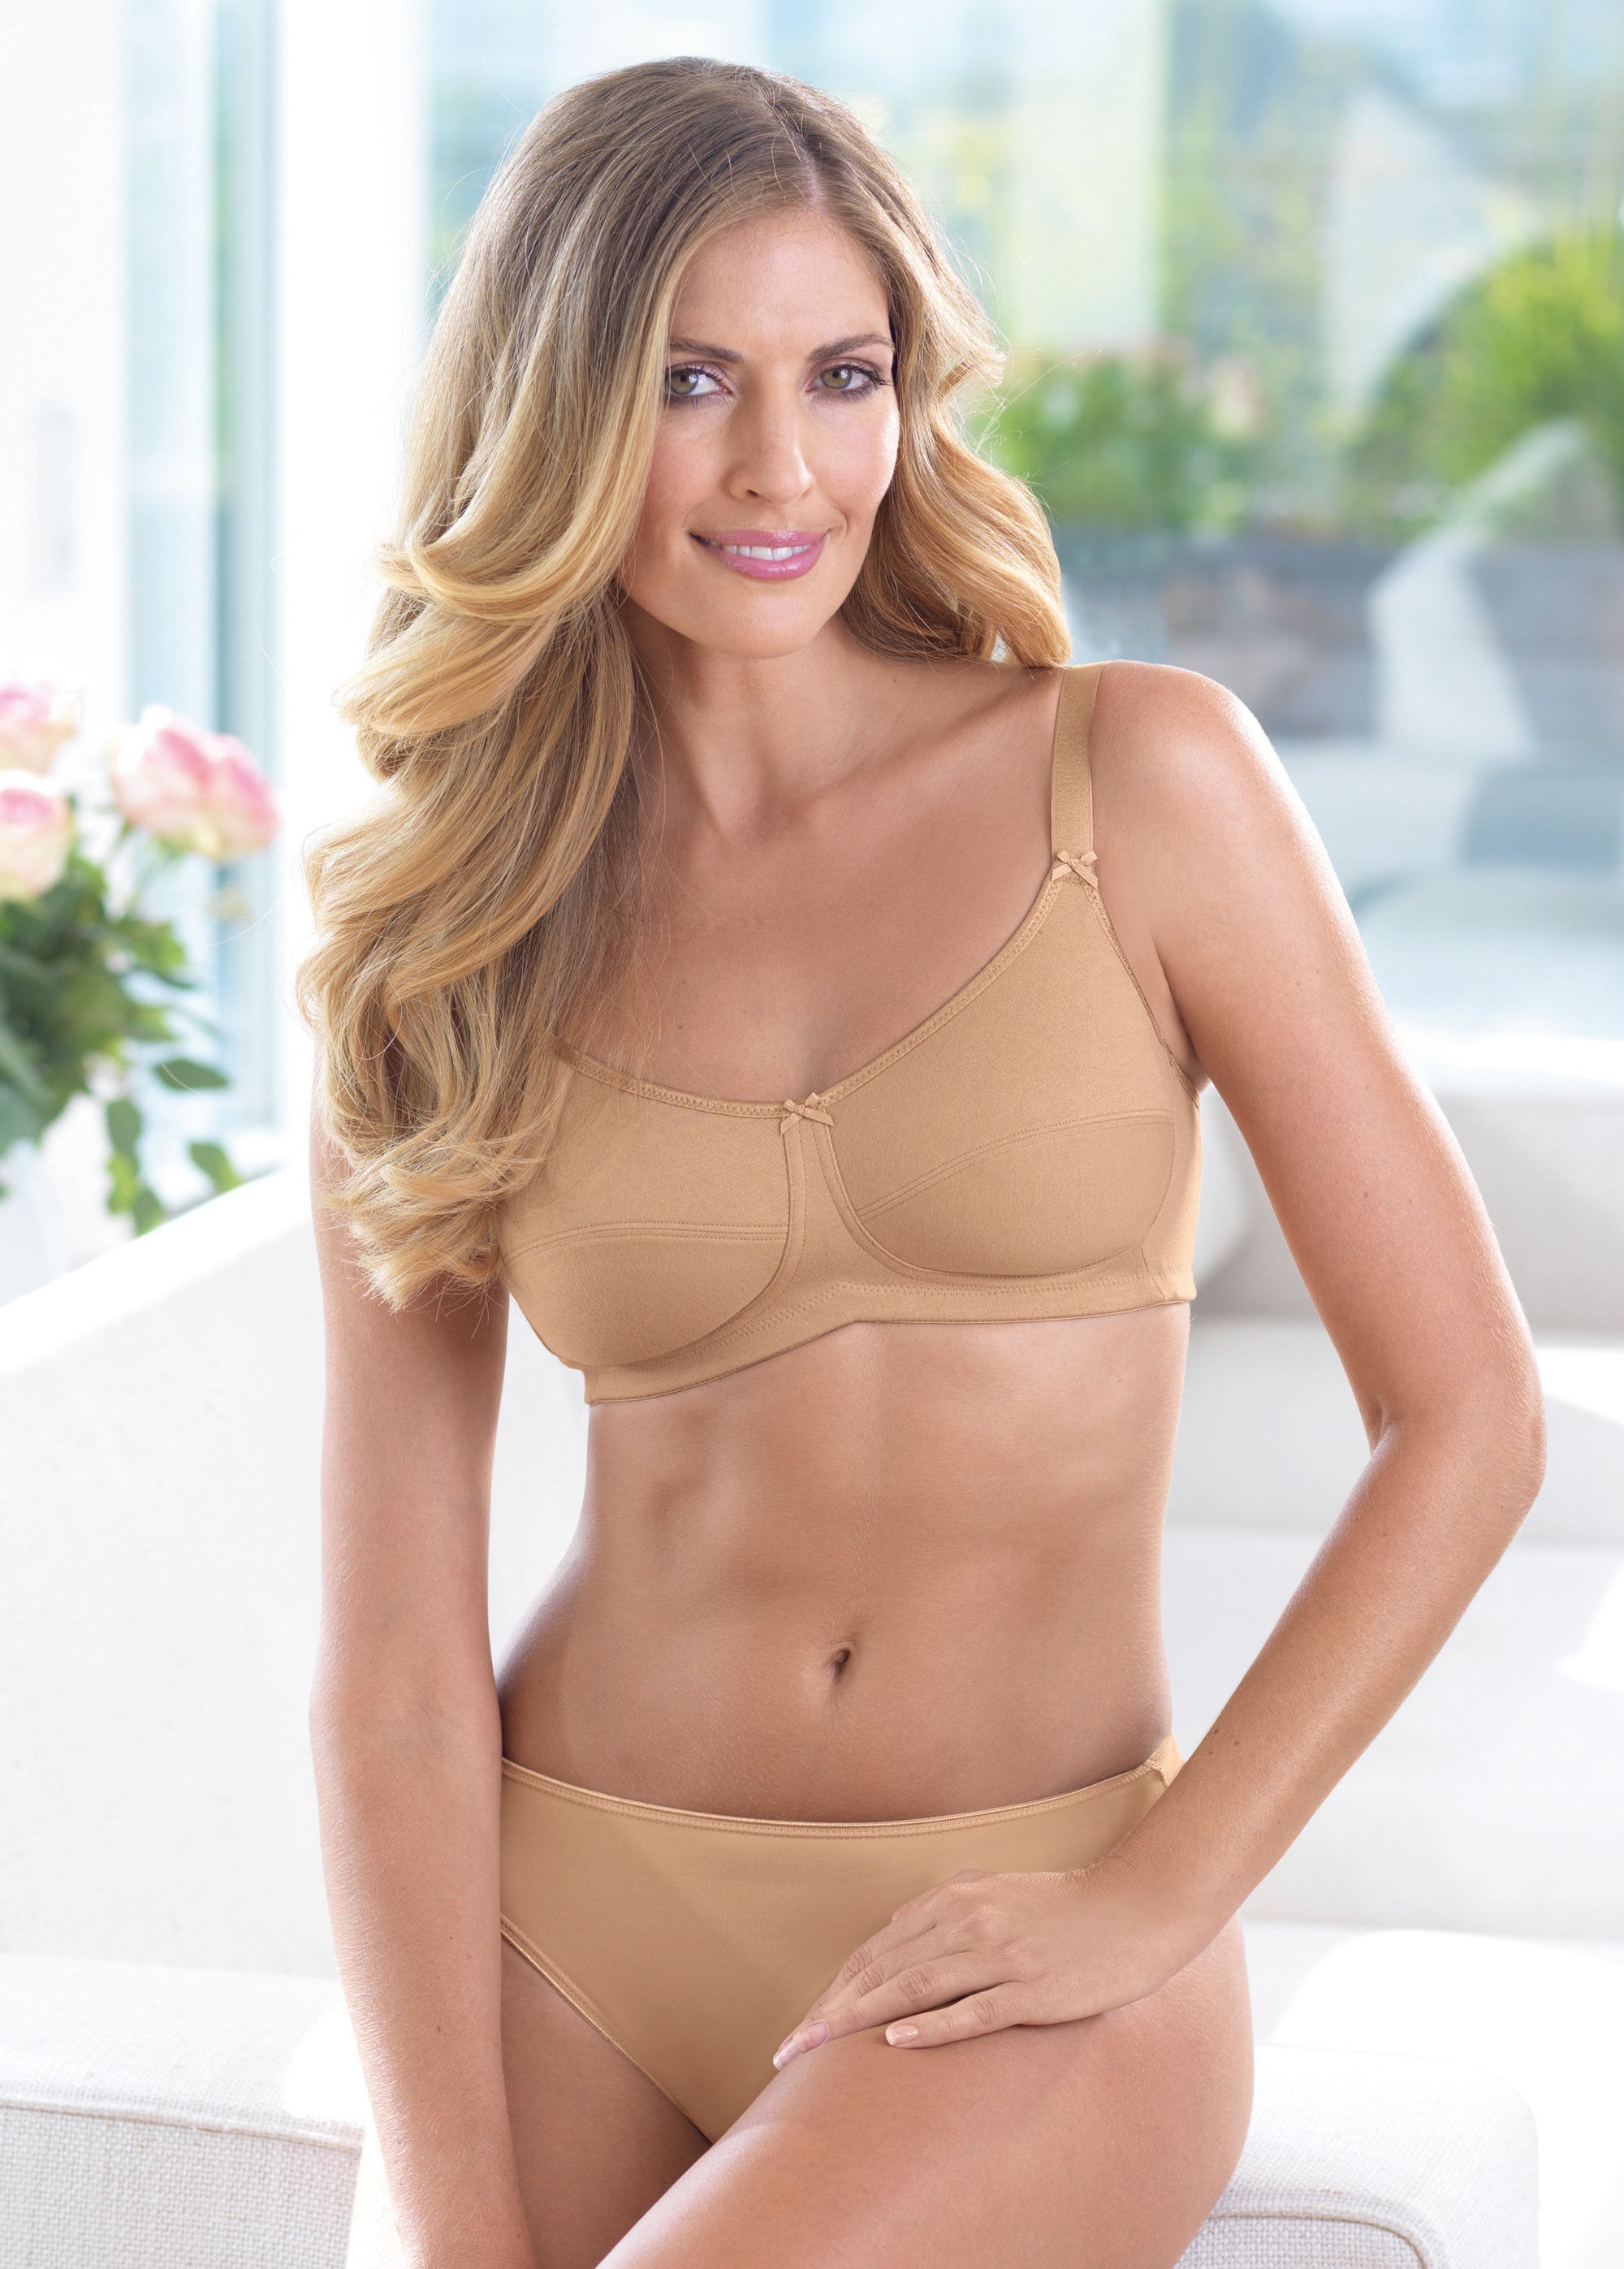 Anita Care Mastectomy Bra 5301X